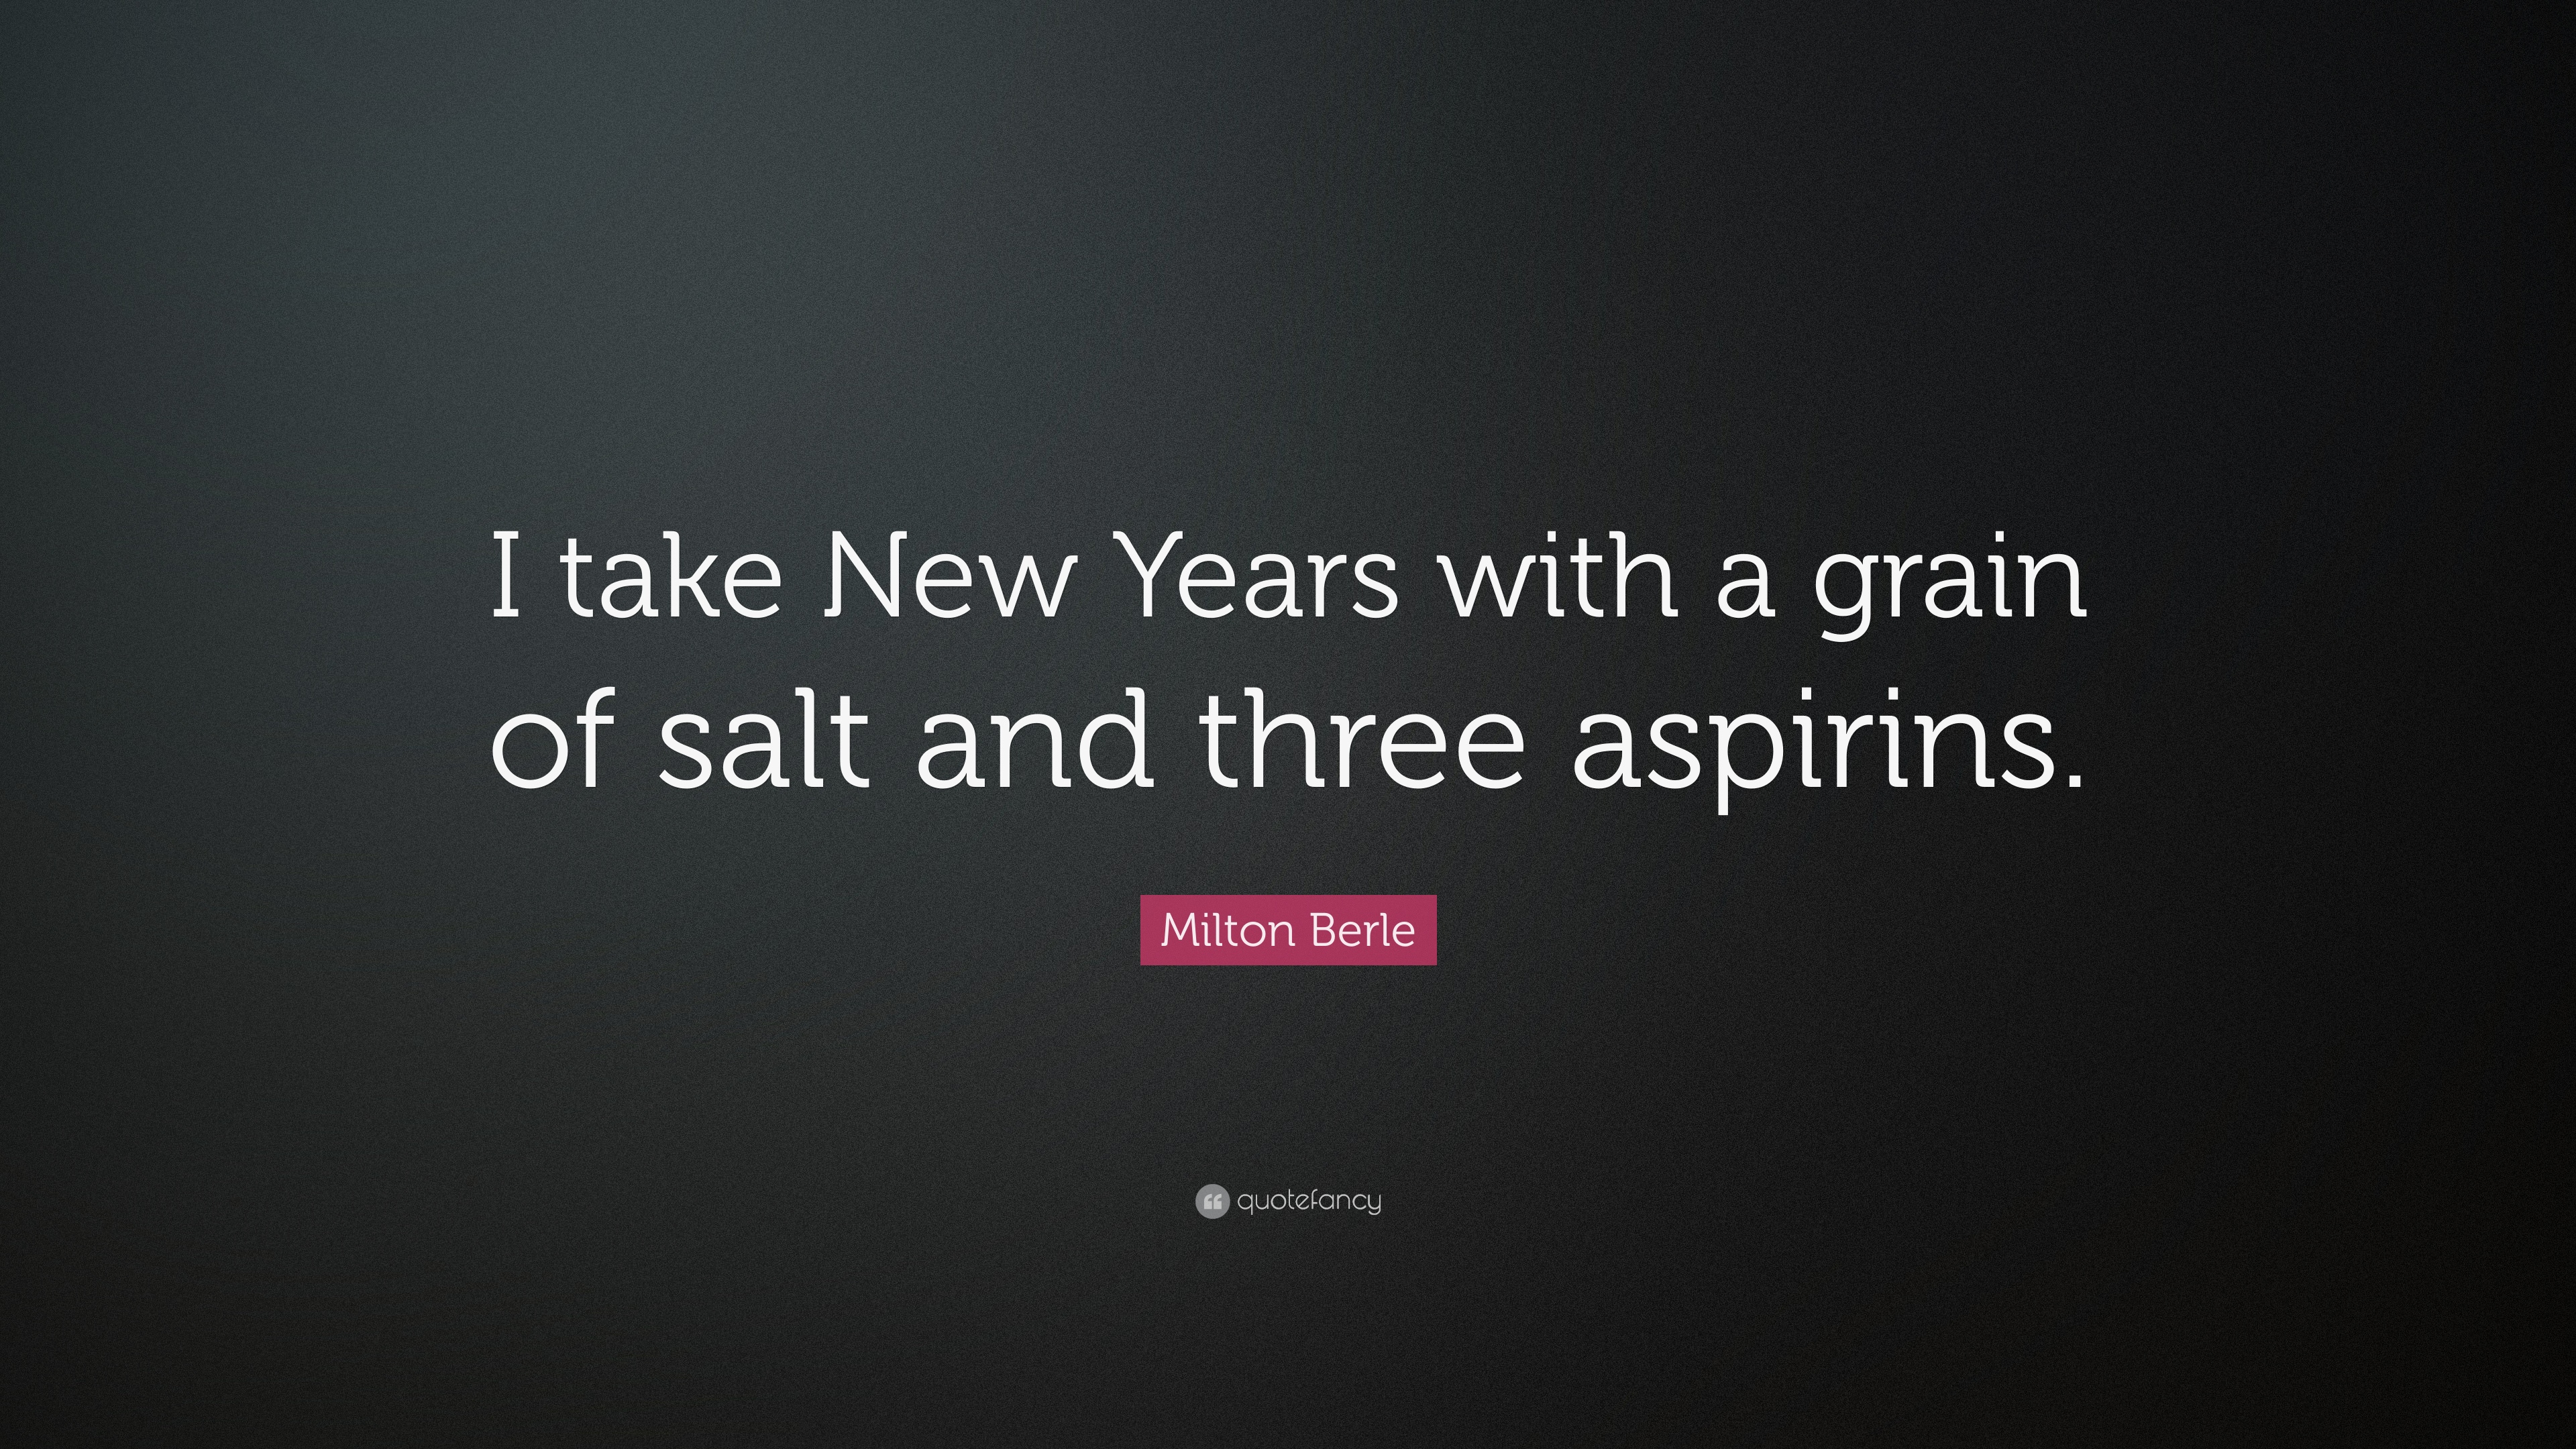 new year quotes i take new years with a grain of salt and three